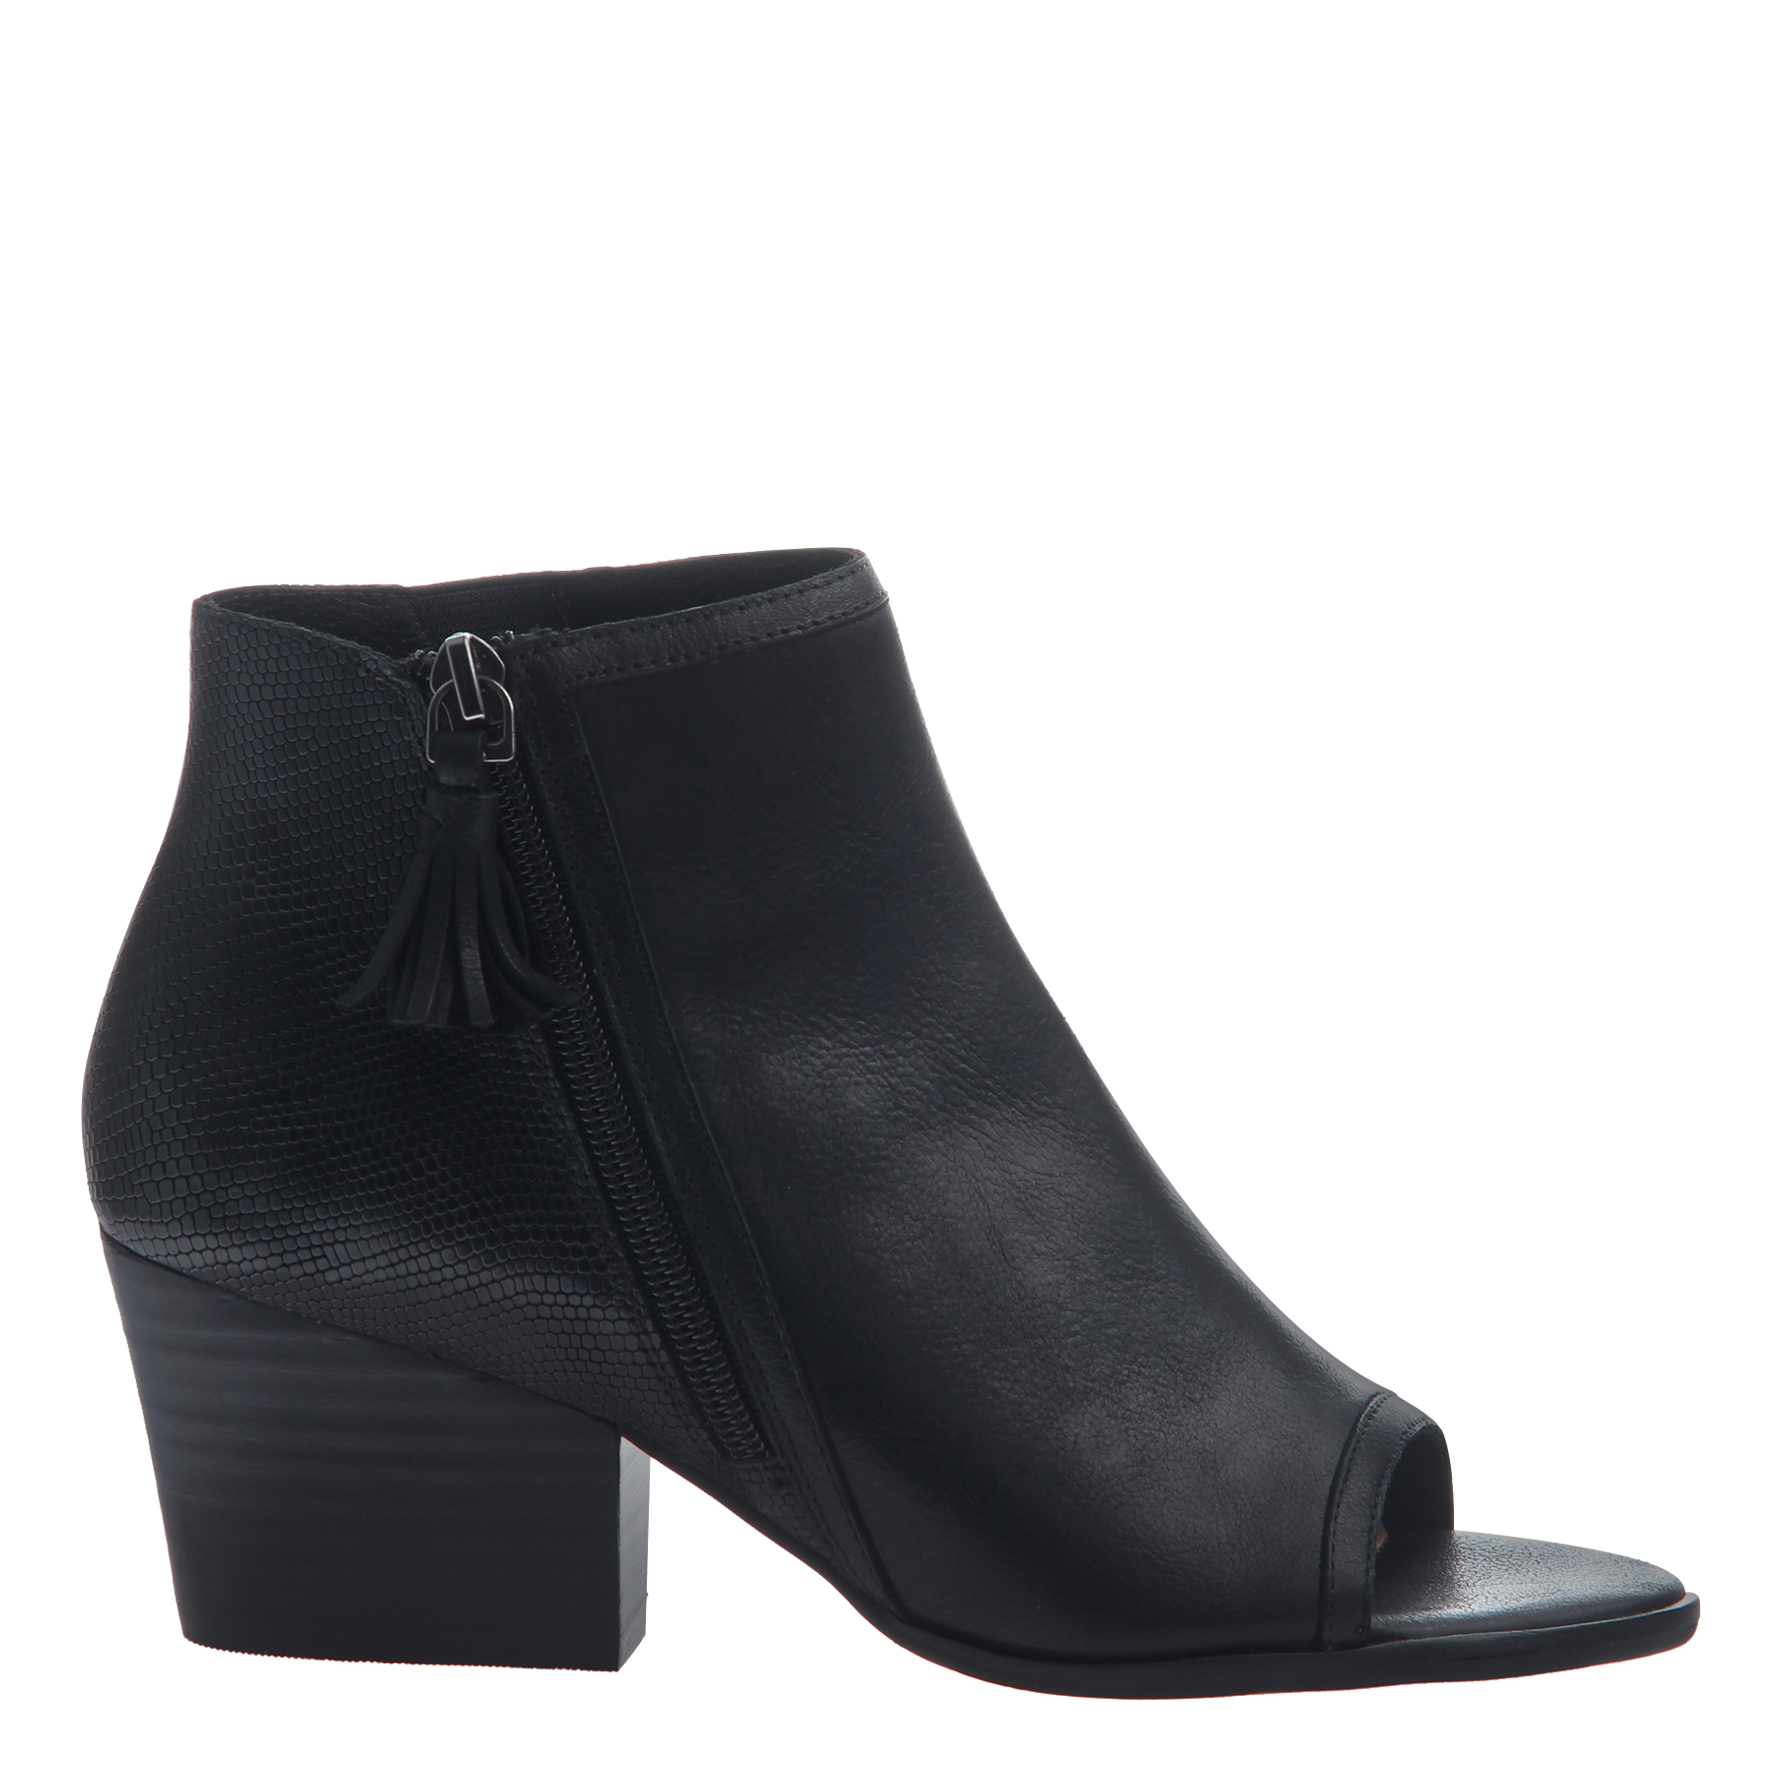 Nicole womens ankle boot Ania in black side view